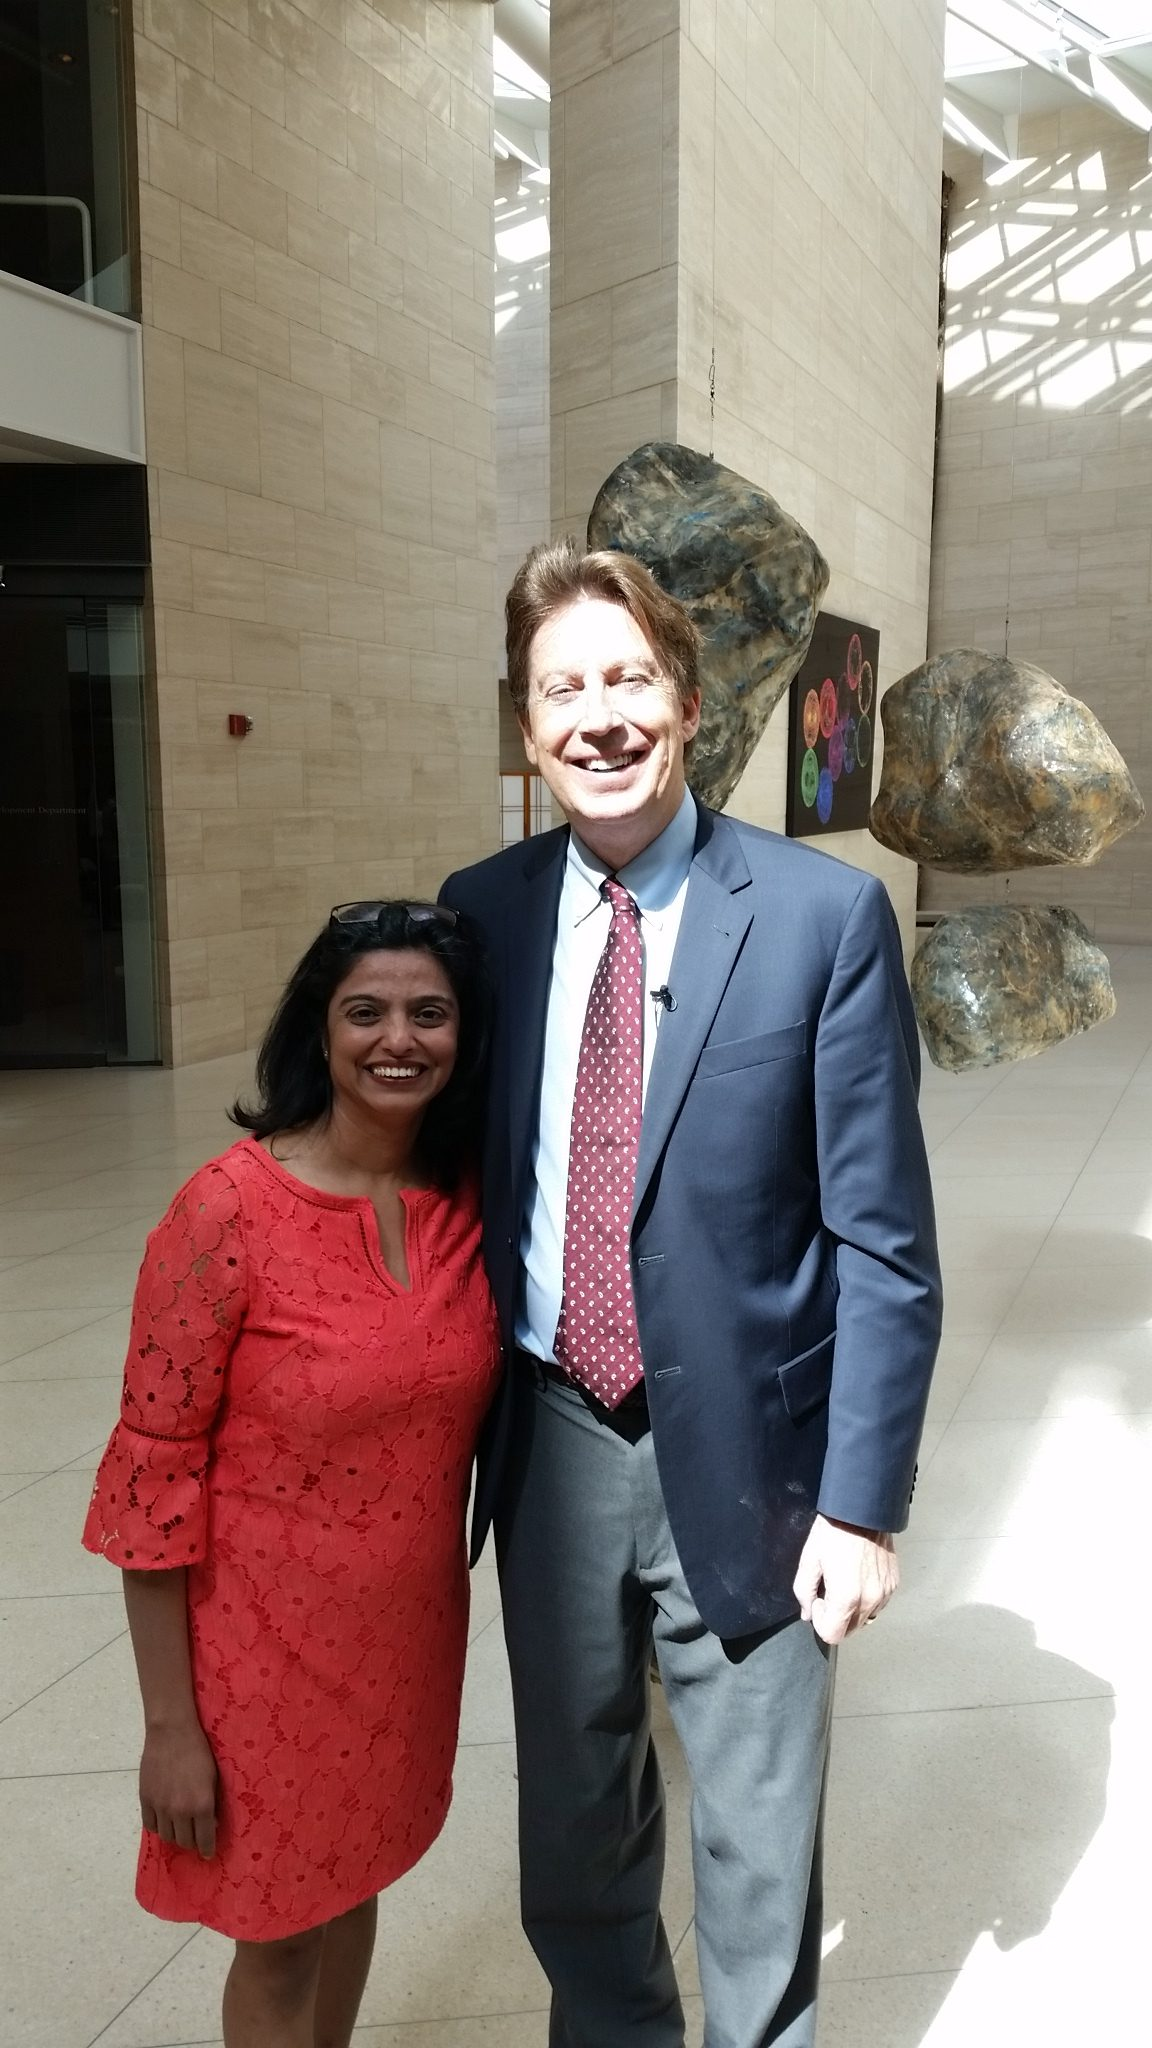 Dr. Bredesen and Aarti Batavia at a conference